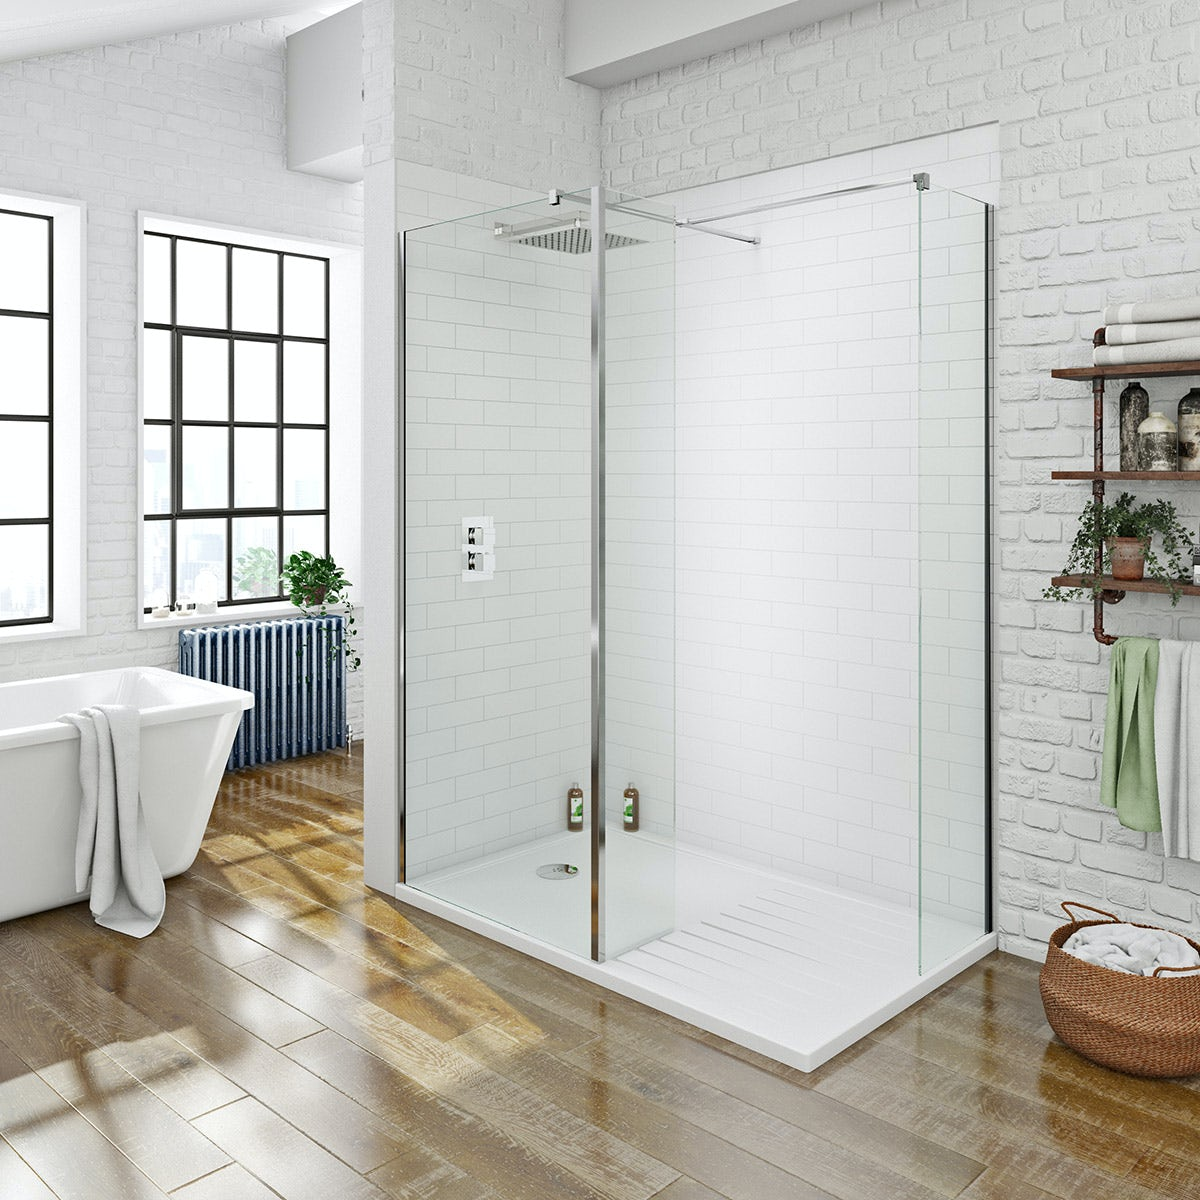 Mode Luxury 8mm Walk In Shower Enclosure With Tray